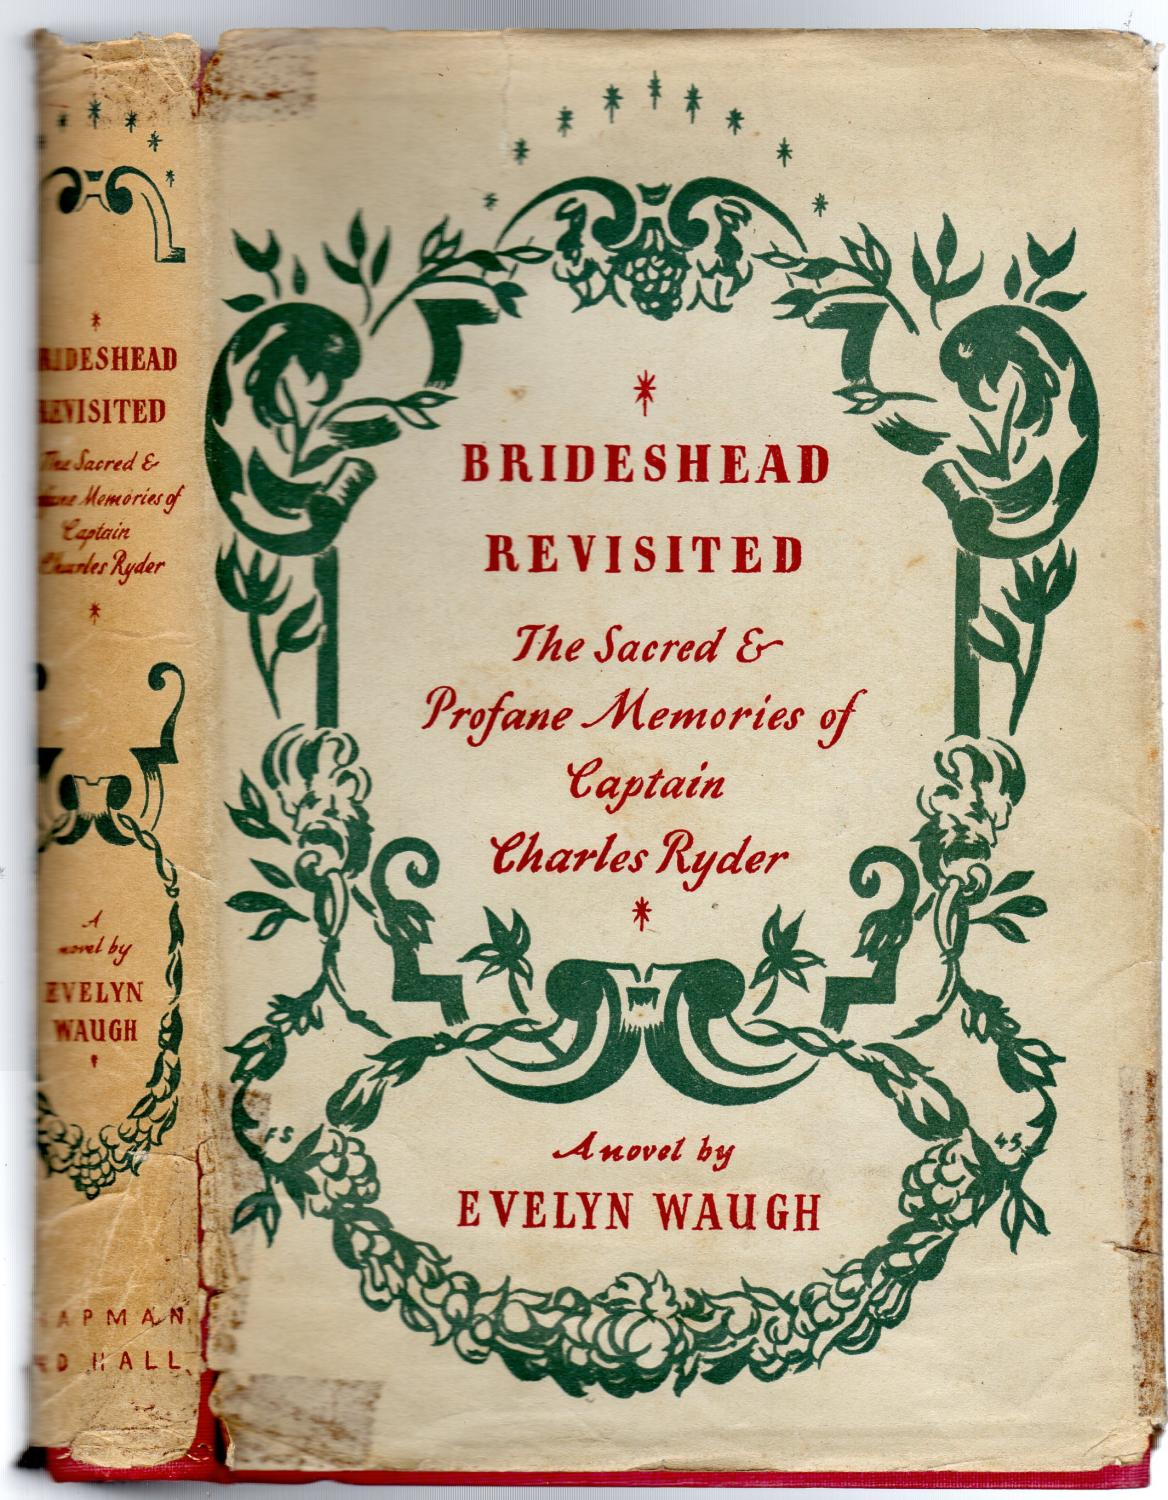 Brideshead revisited by waugh first edition abebooks m4hsunfo